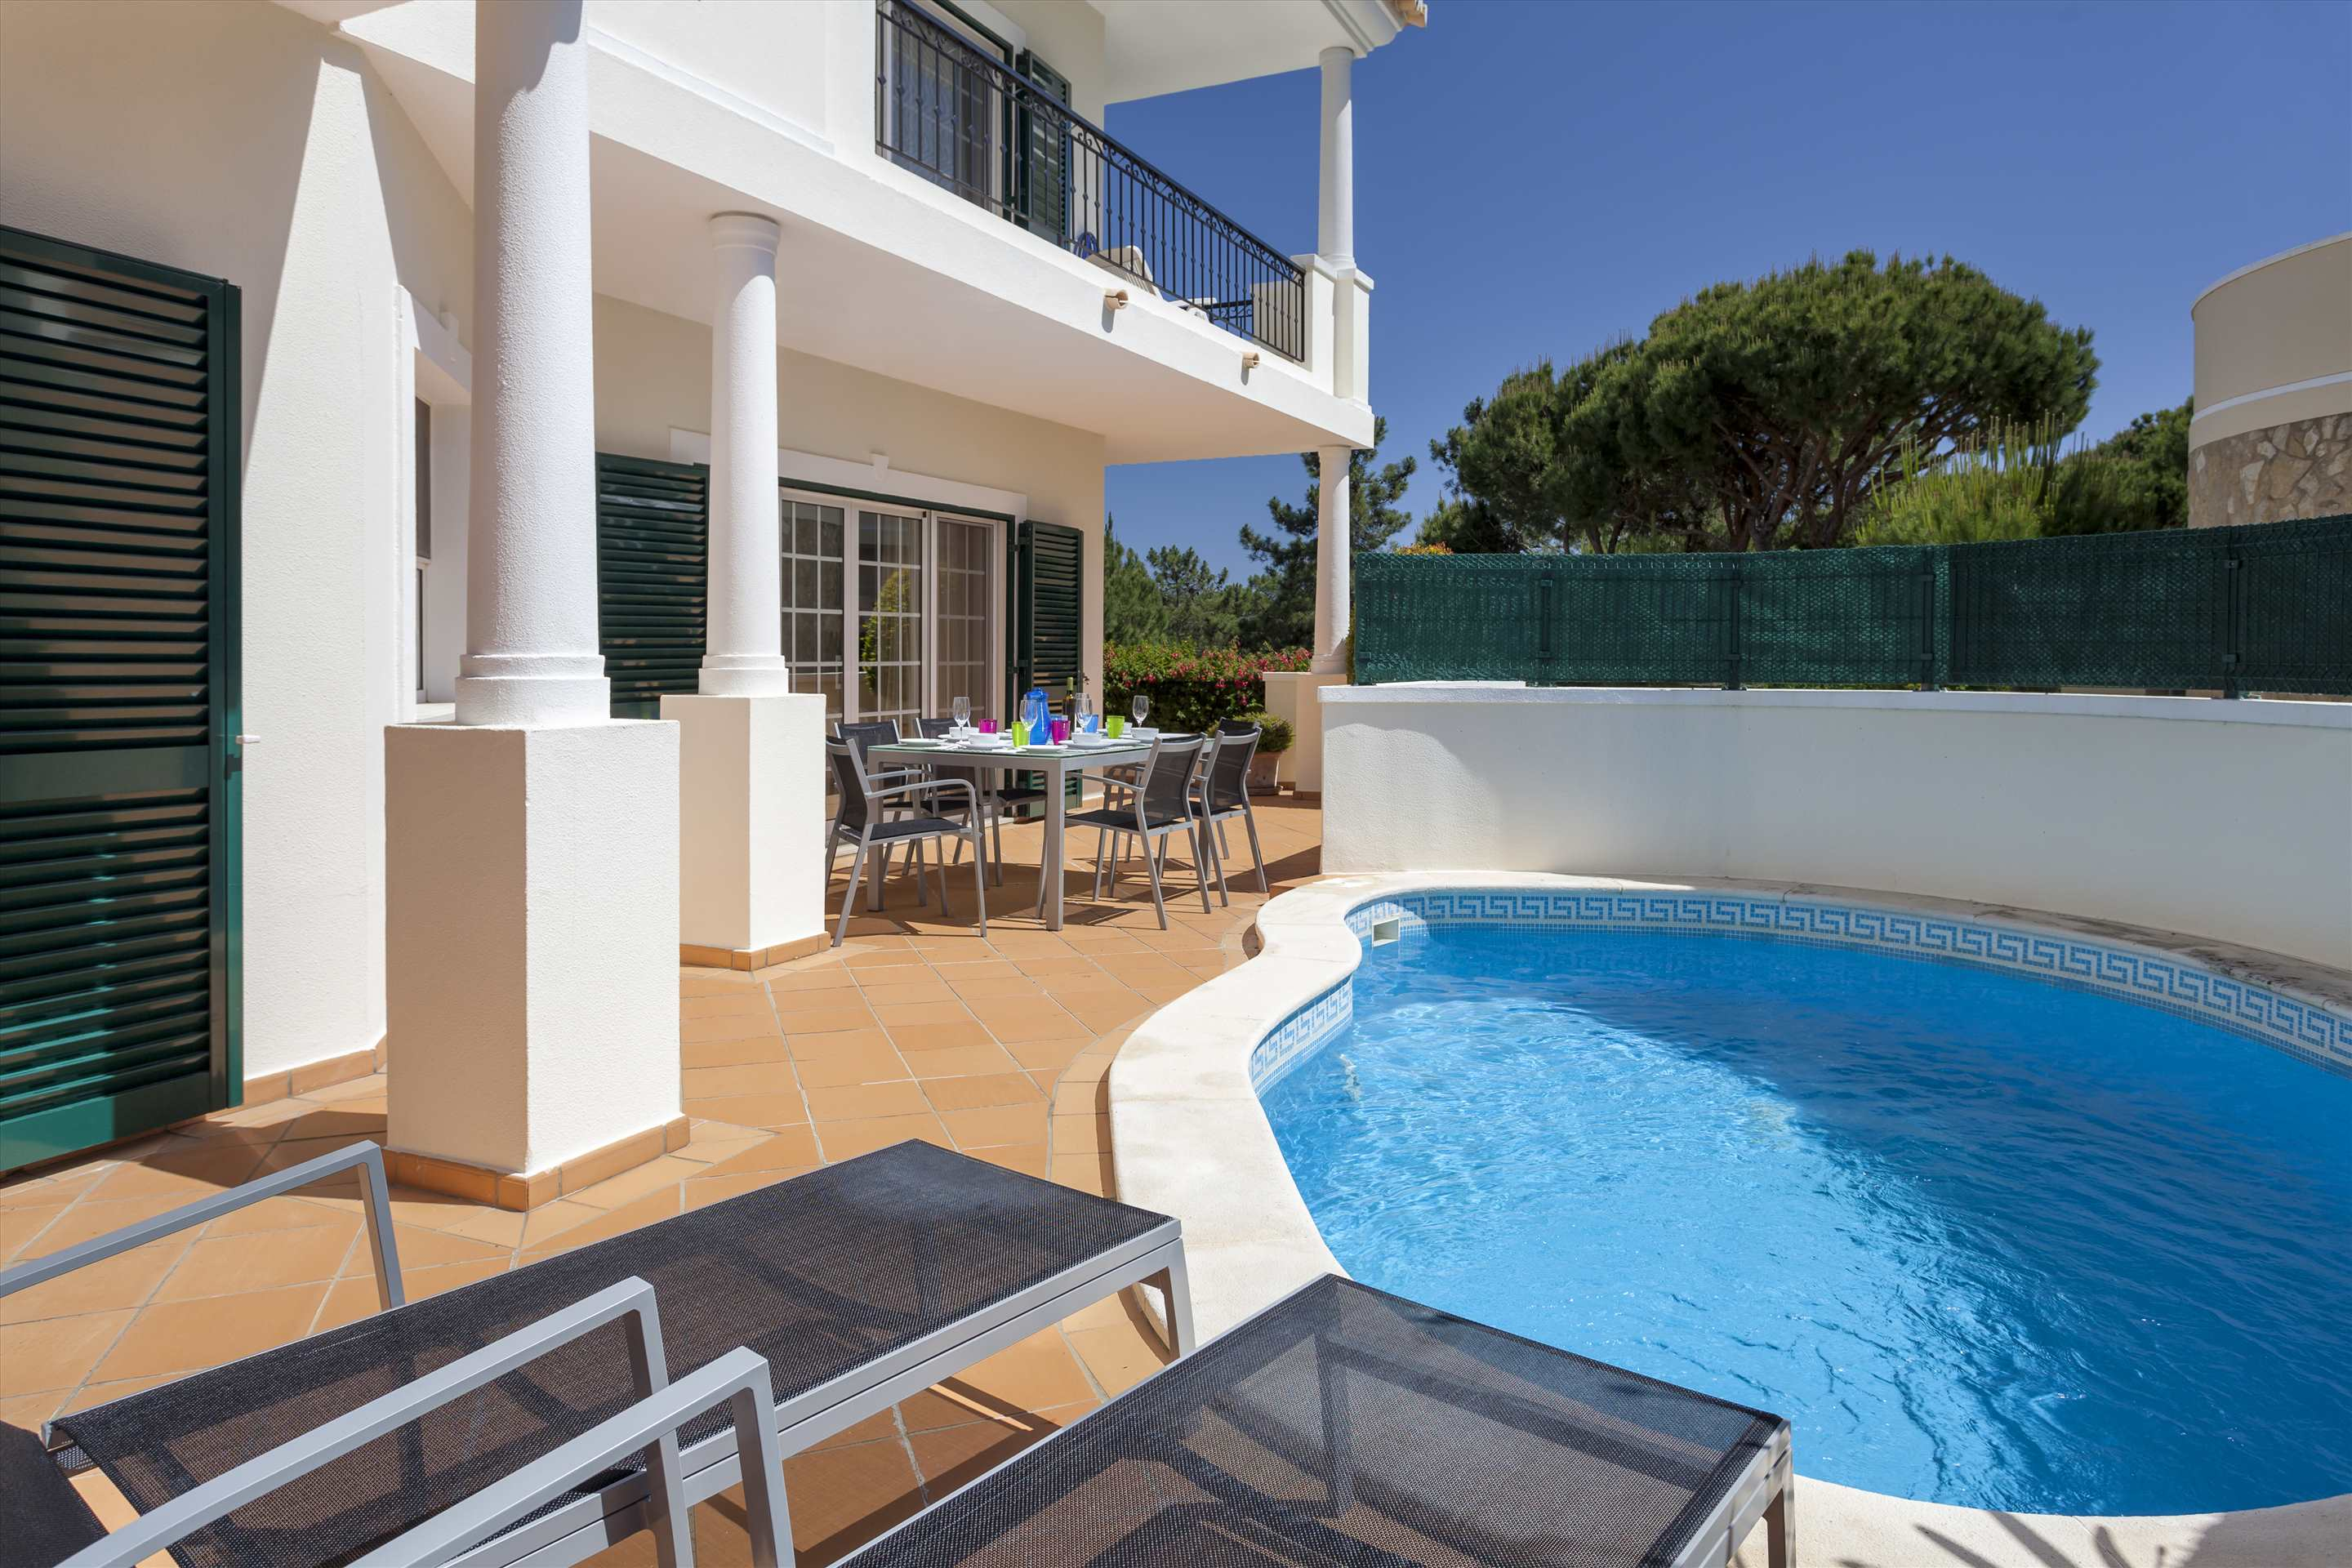 Villa Catarina, 3 bedroom apartment in Vale do Lobo, Algarve Photo #9